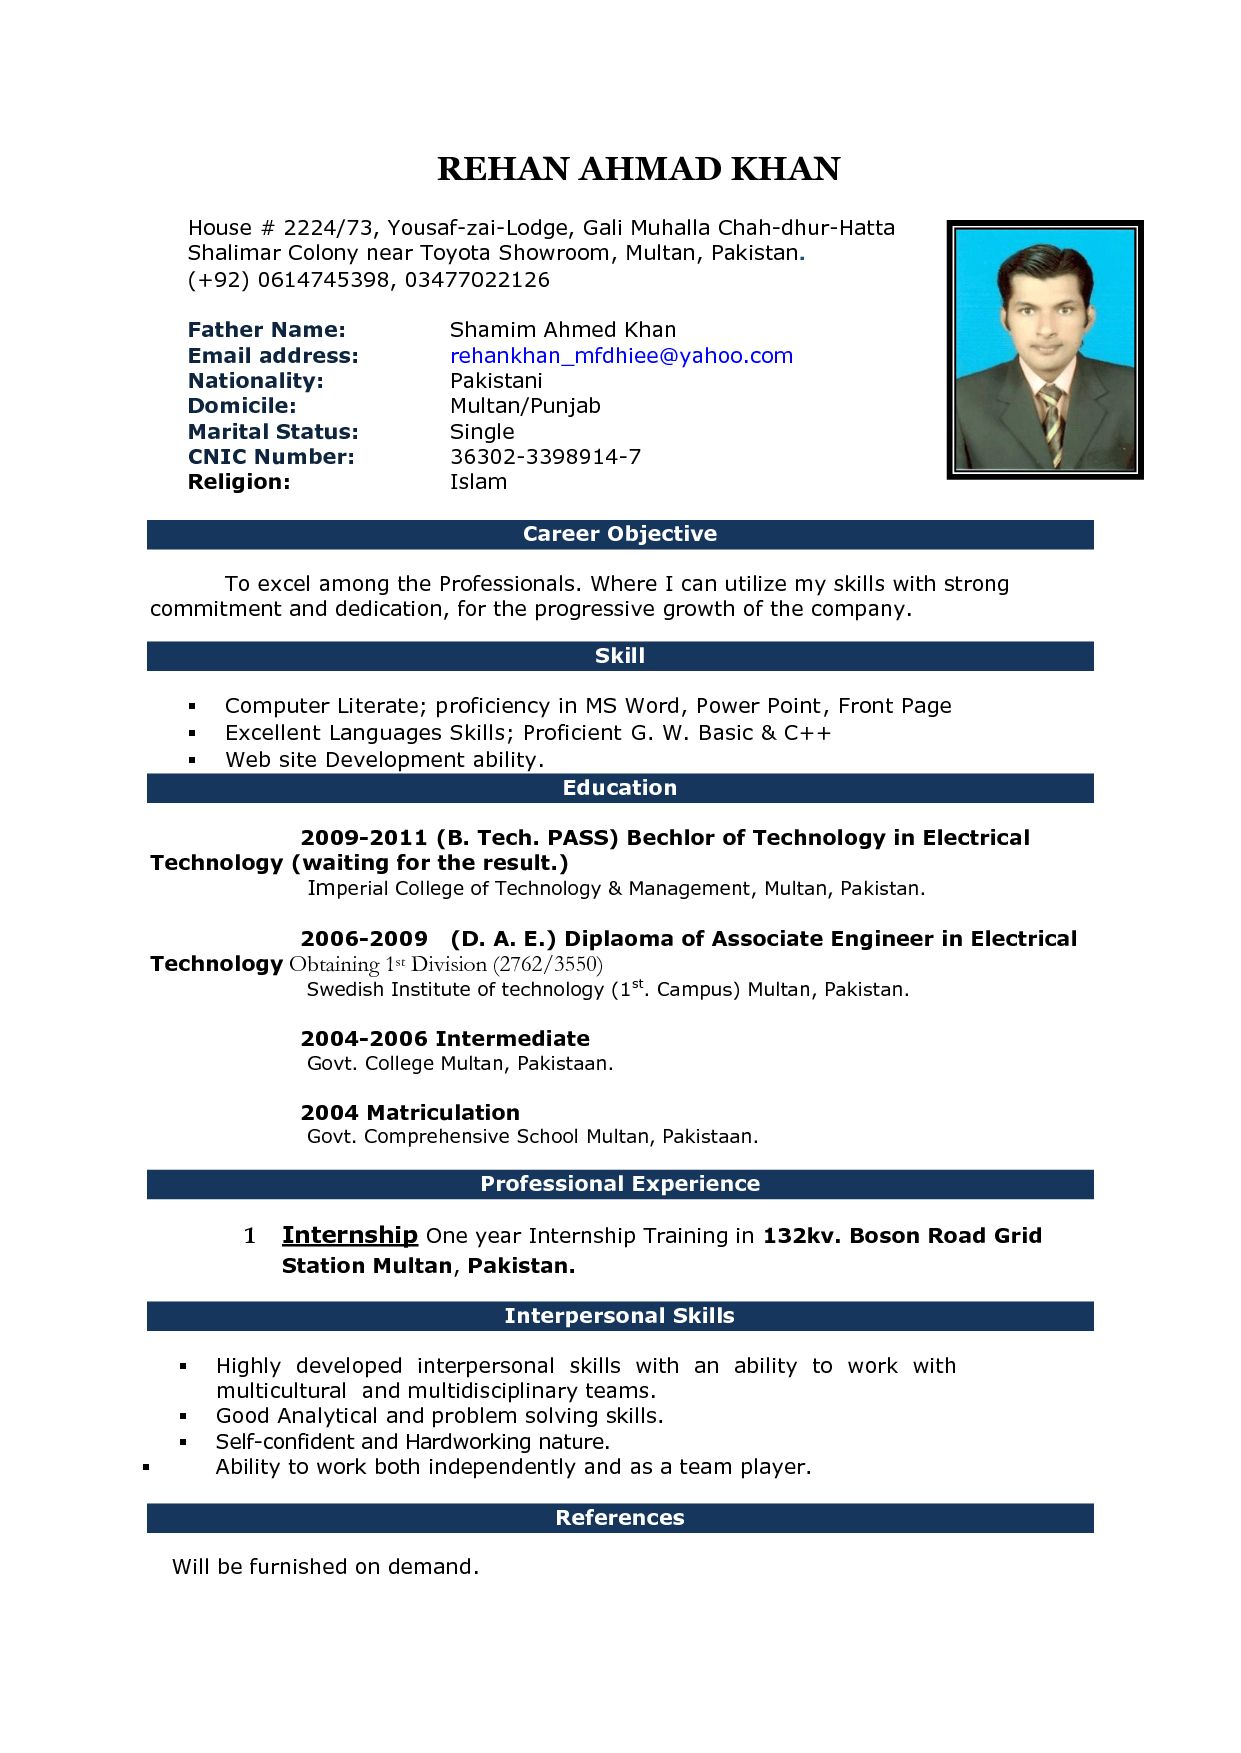 Resume Free Download Format In Ms Word Thorcicerosco